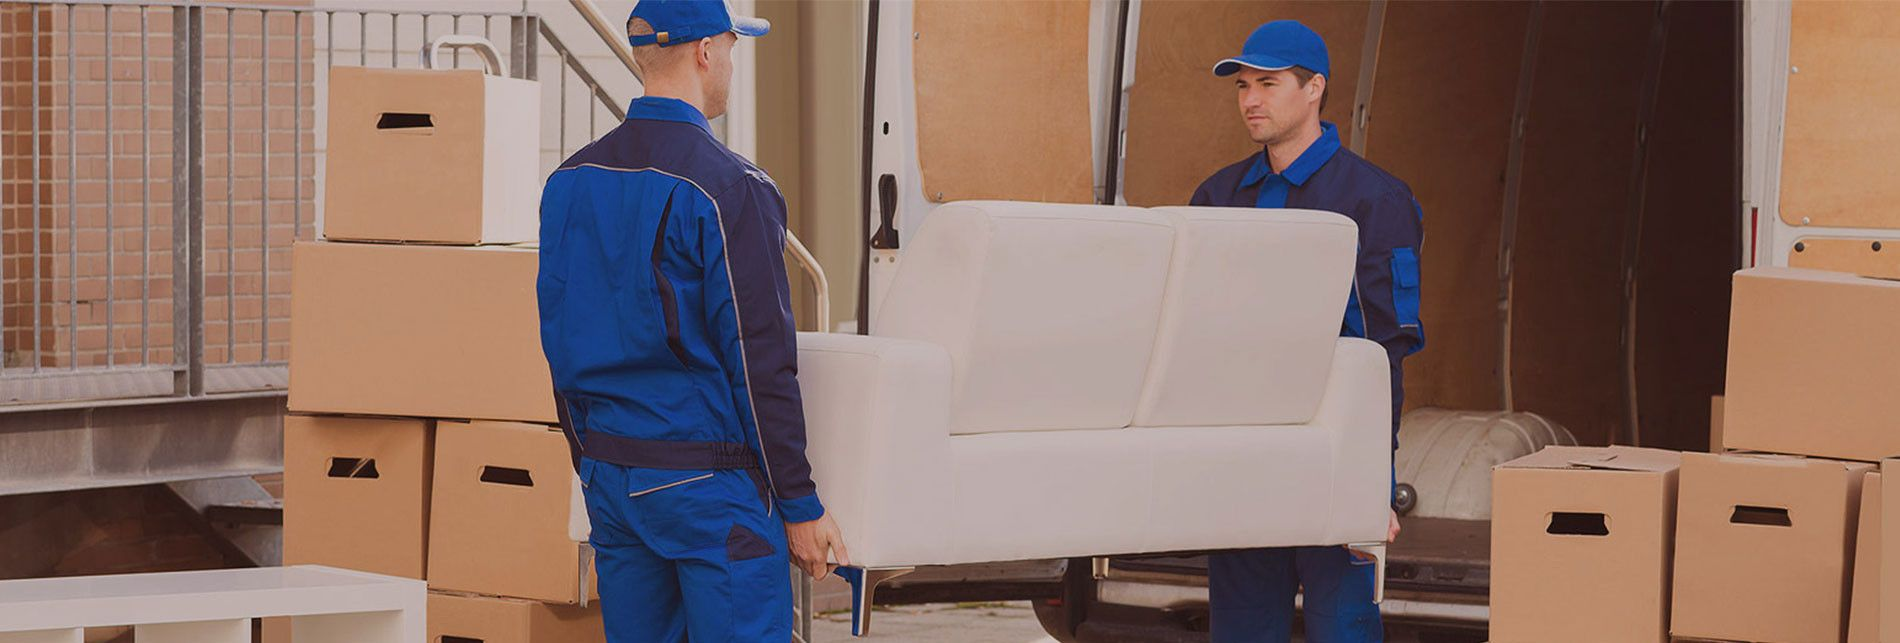 Expert Movers 1